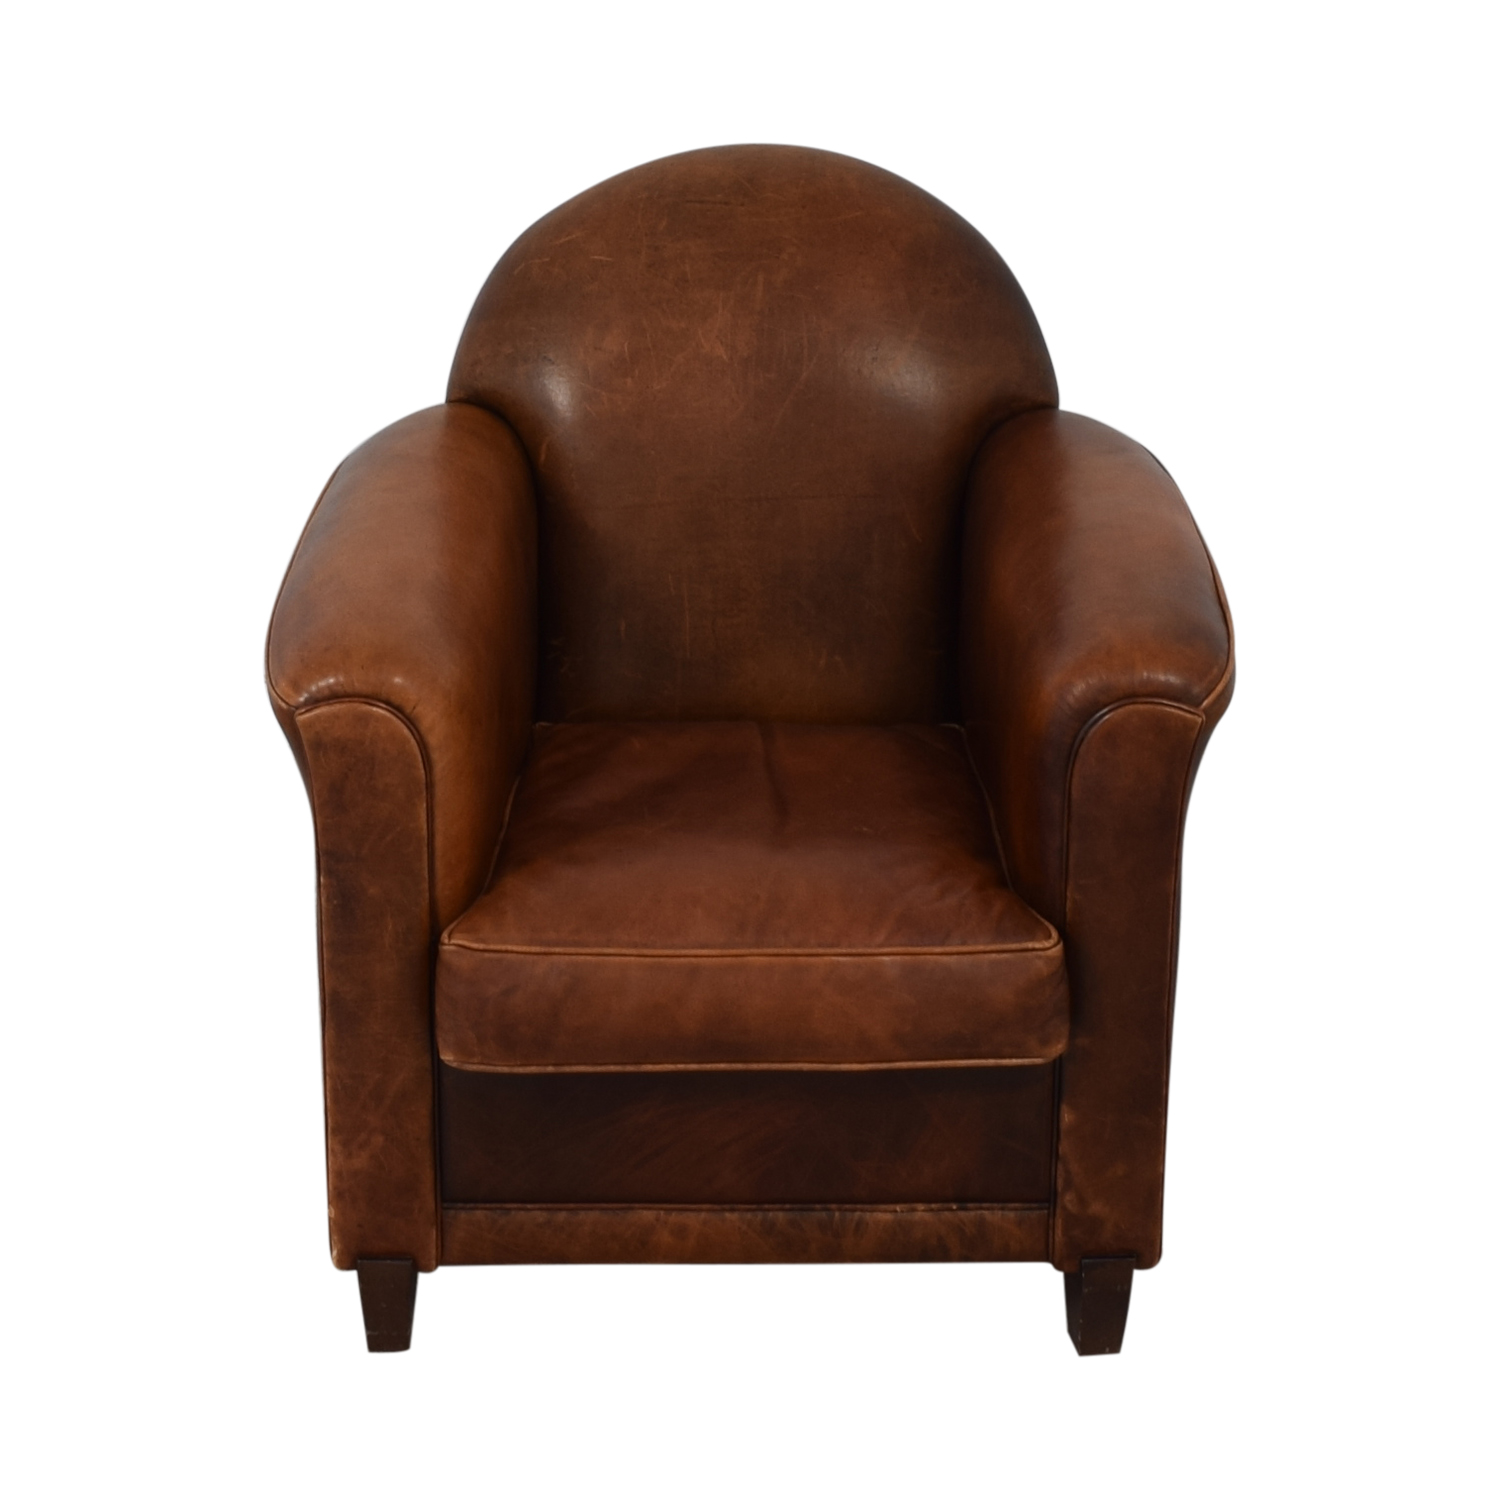 French Leather Club Chair used